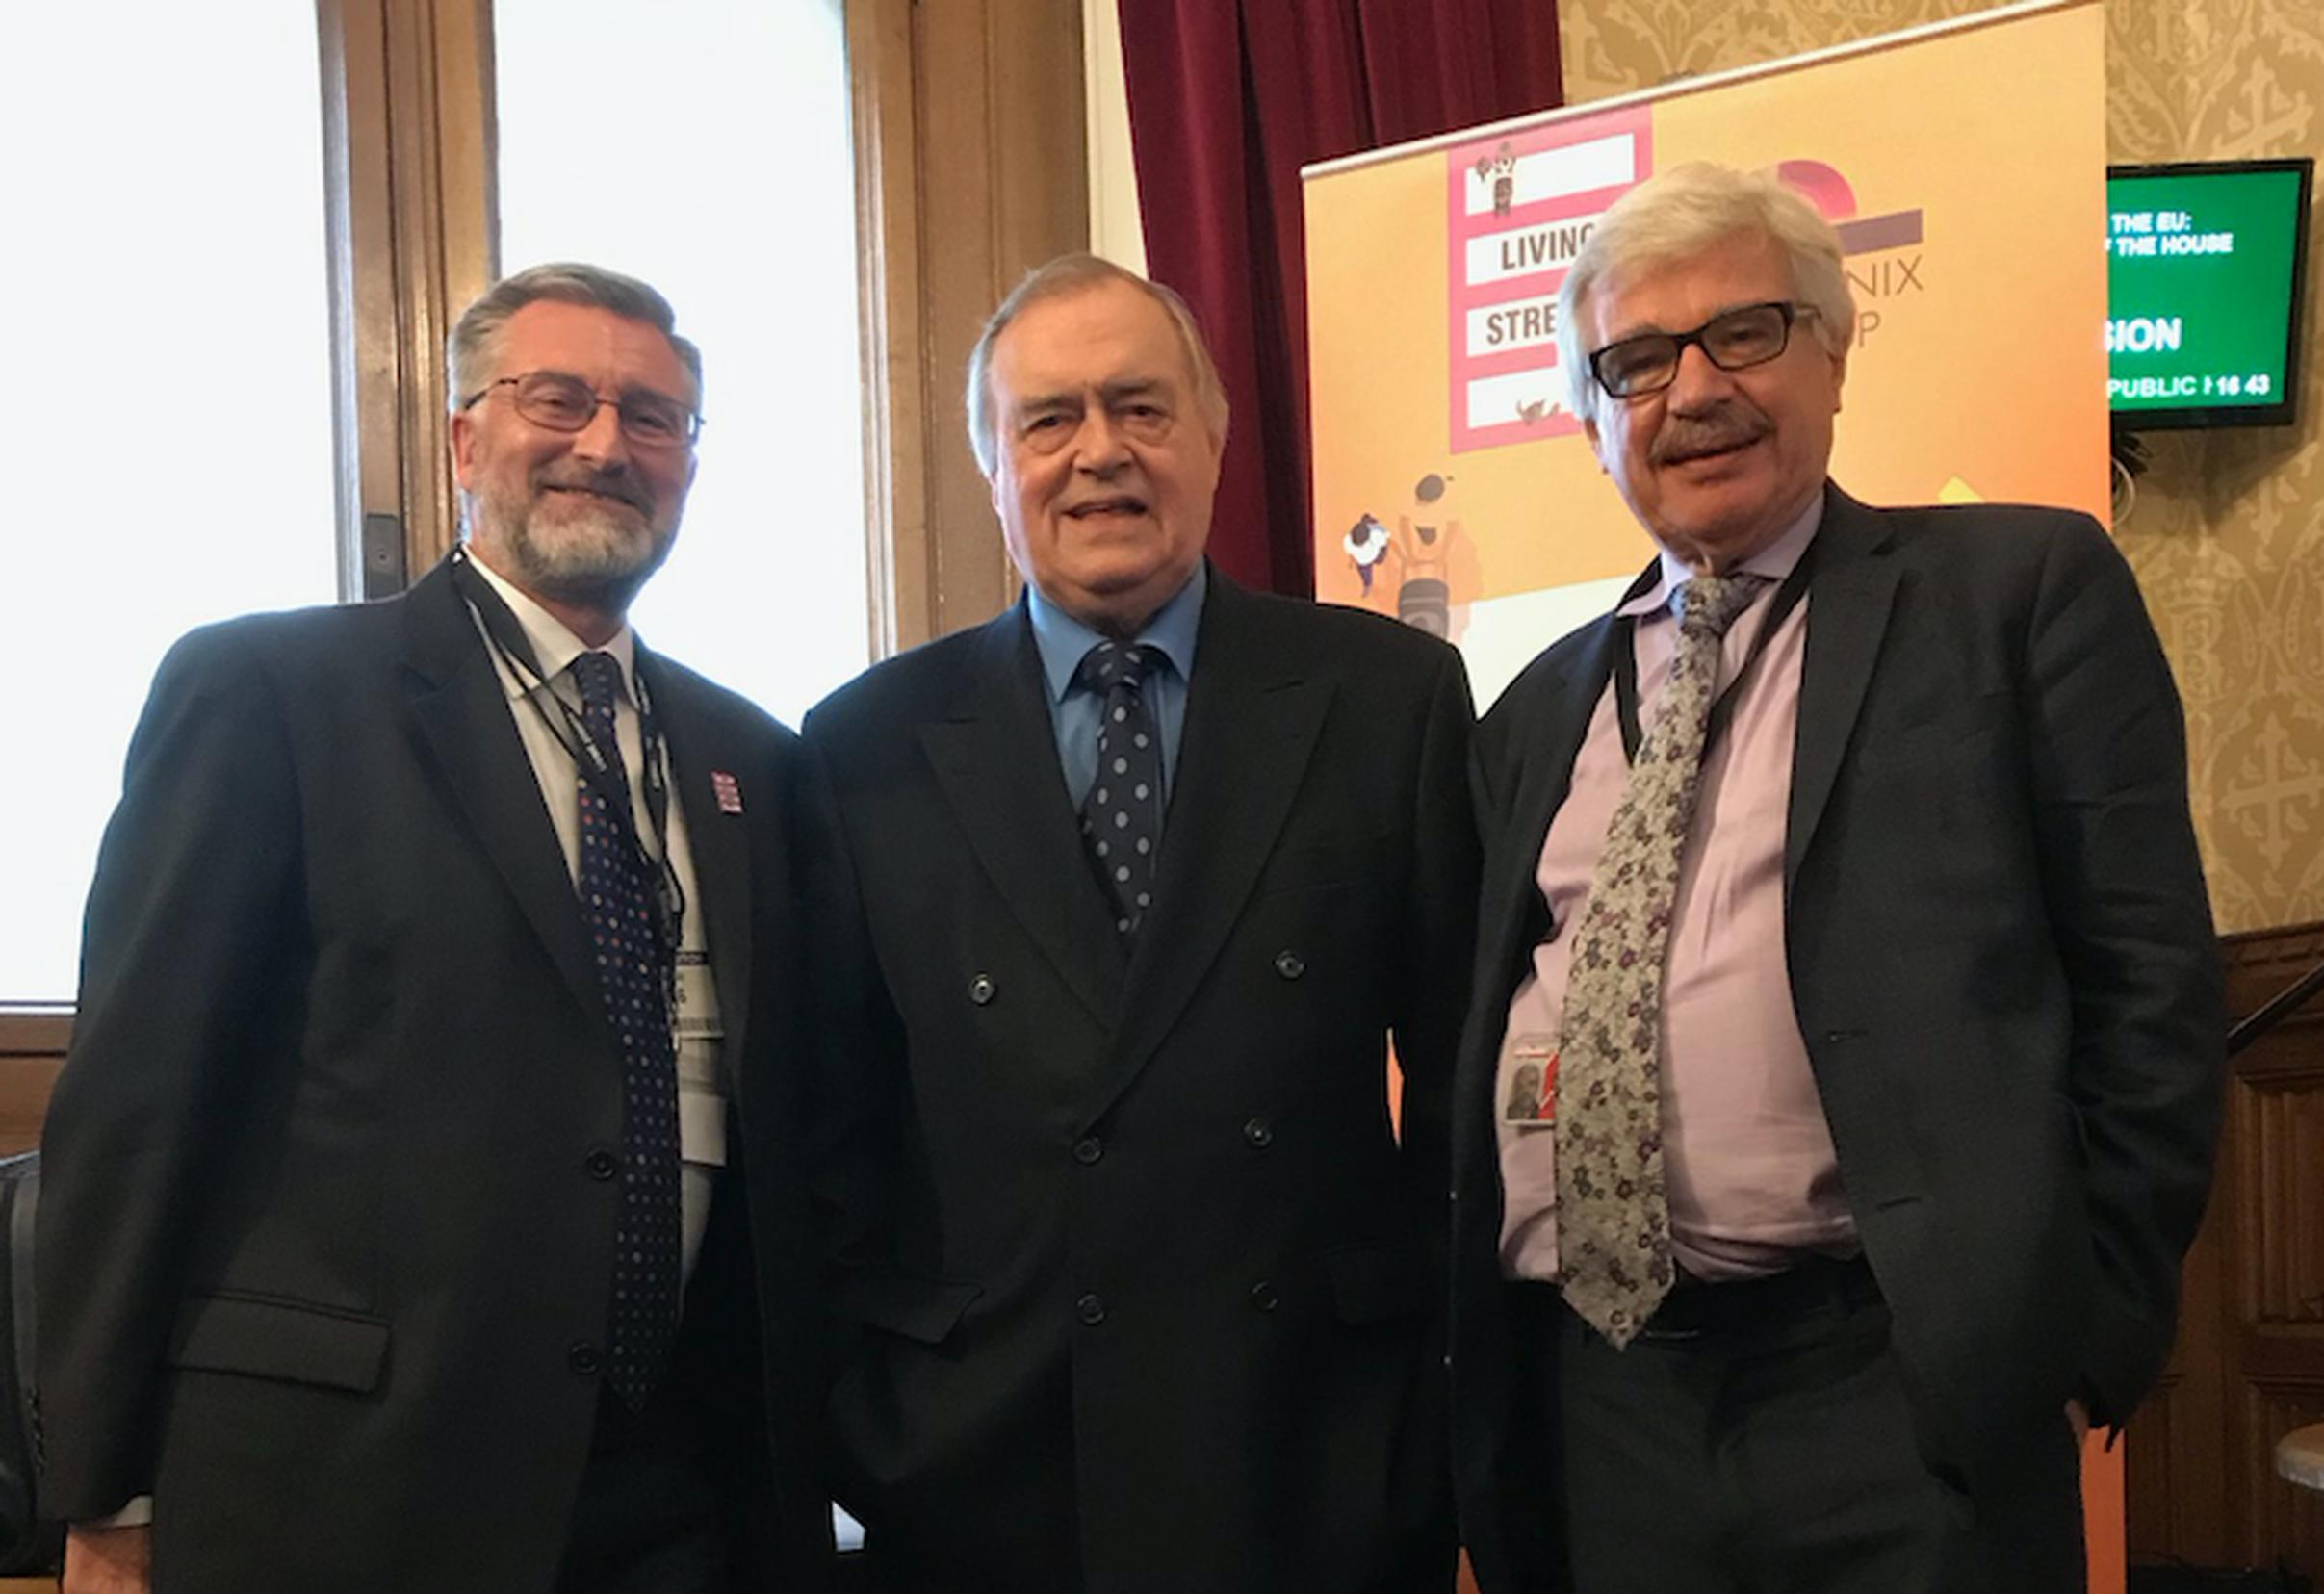 Living Streets CEO Joe Irvin with Lord Prescott and Lord Whitty at the charity`s 90th anniversary reception